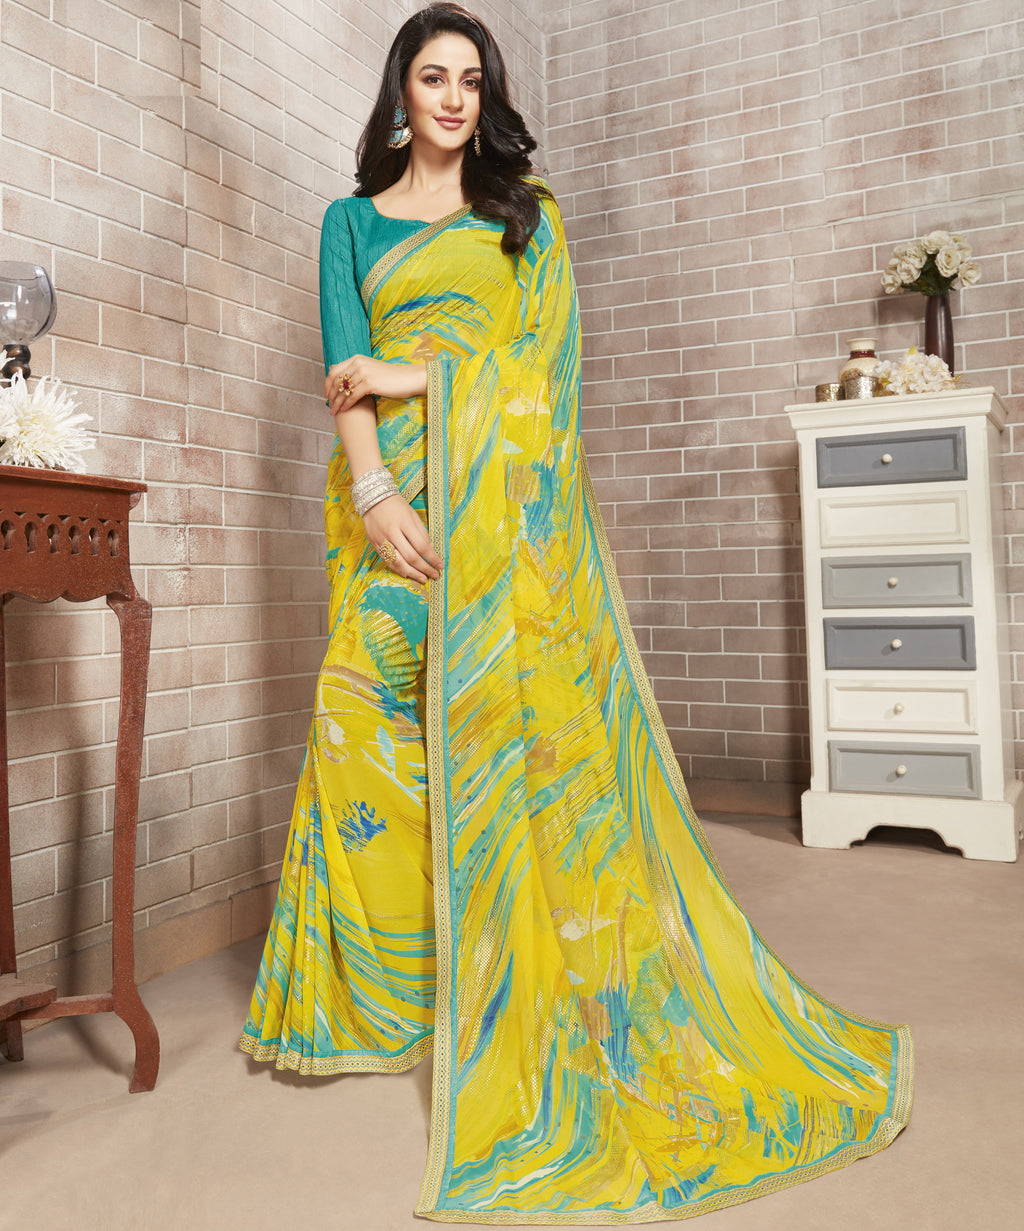 Lemon Yellow Color Georgette Lovely Office Wear Sarees NYF-6215